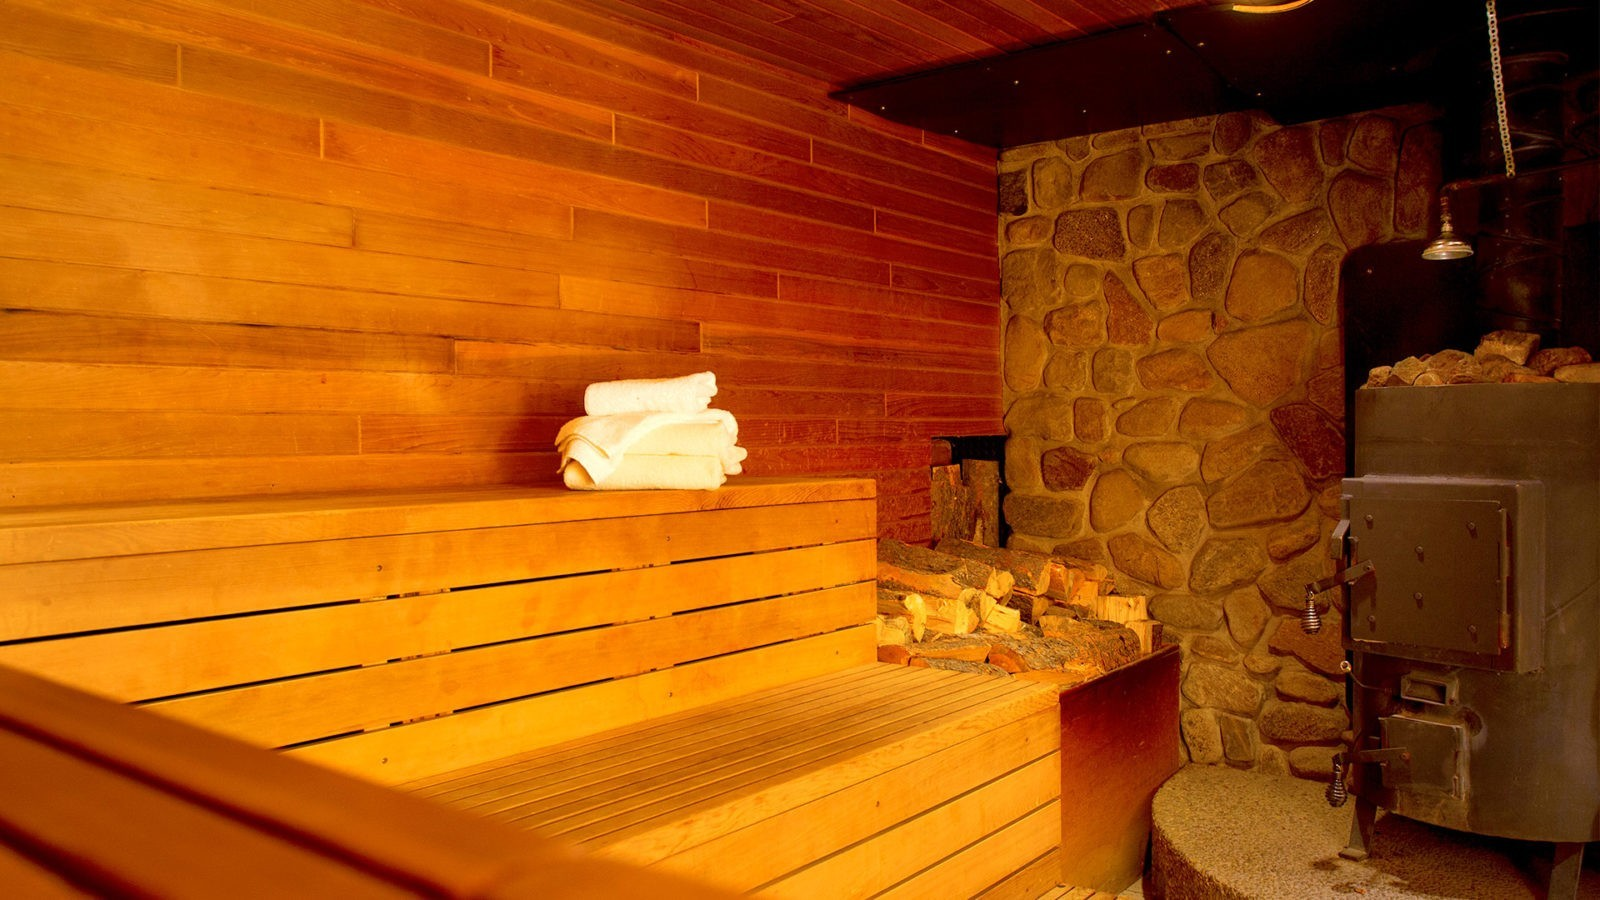 Sauna & Steam Room Sauna Rooms Equipment and Accessories: